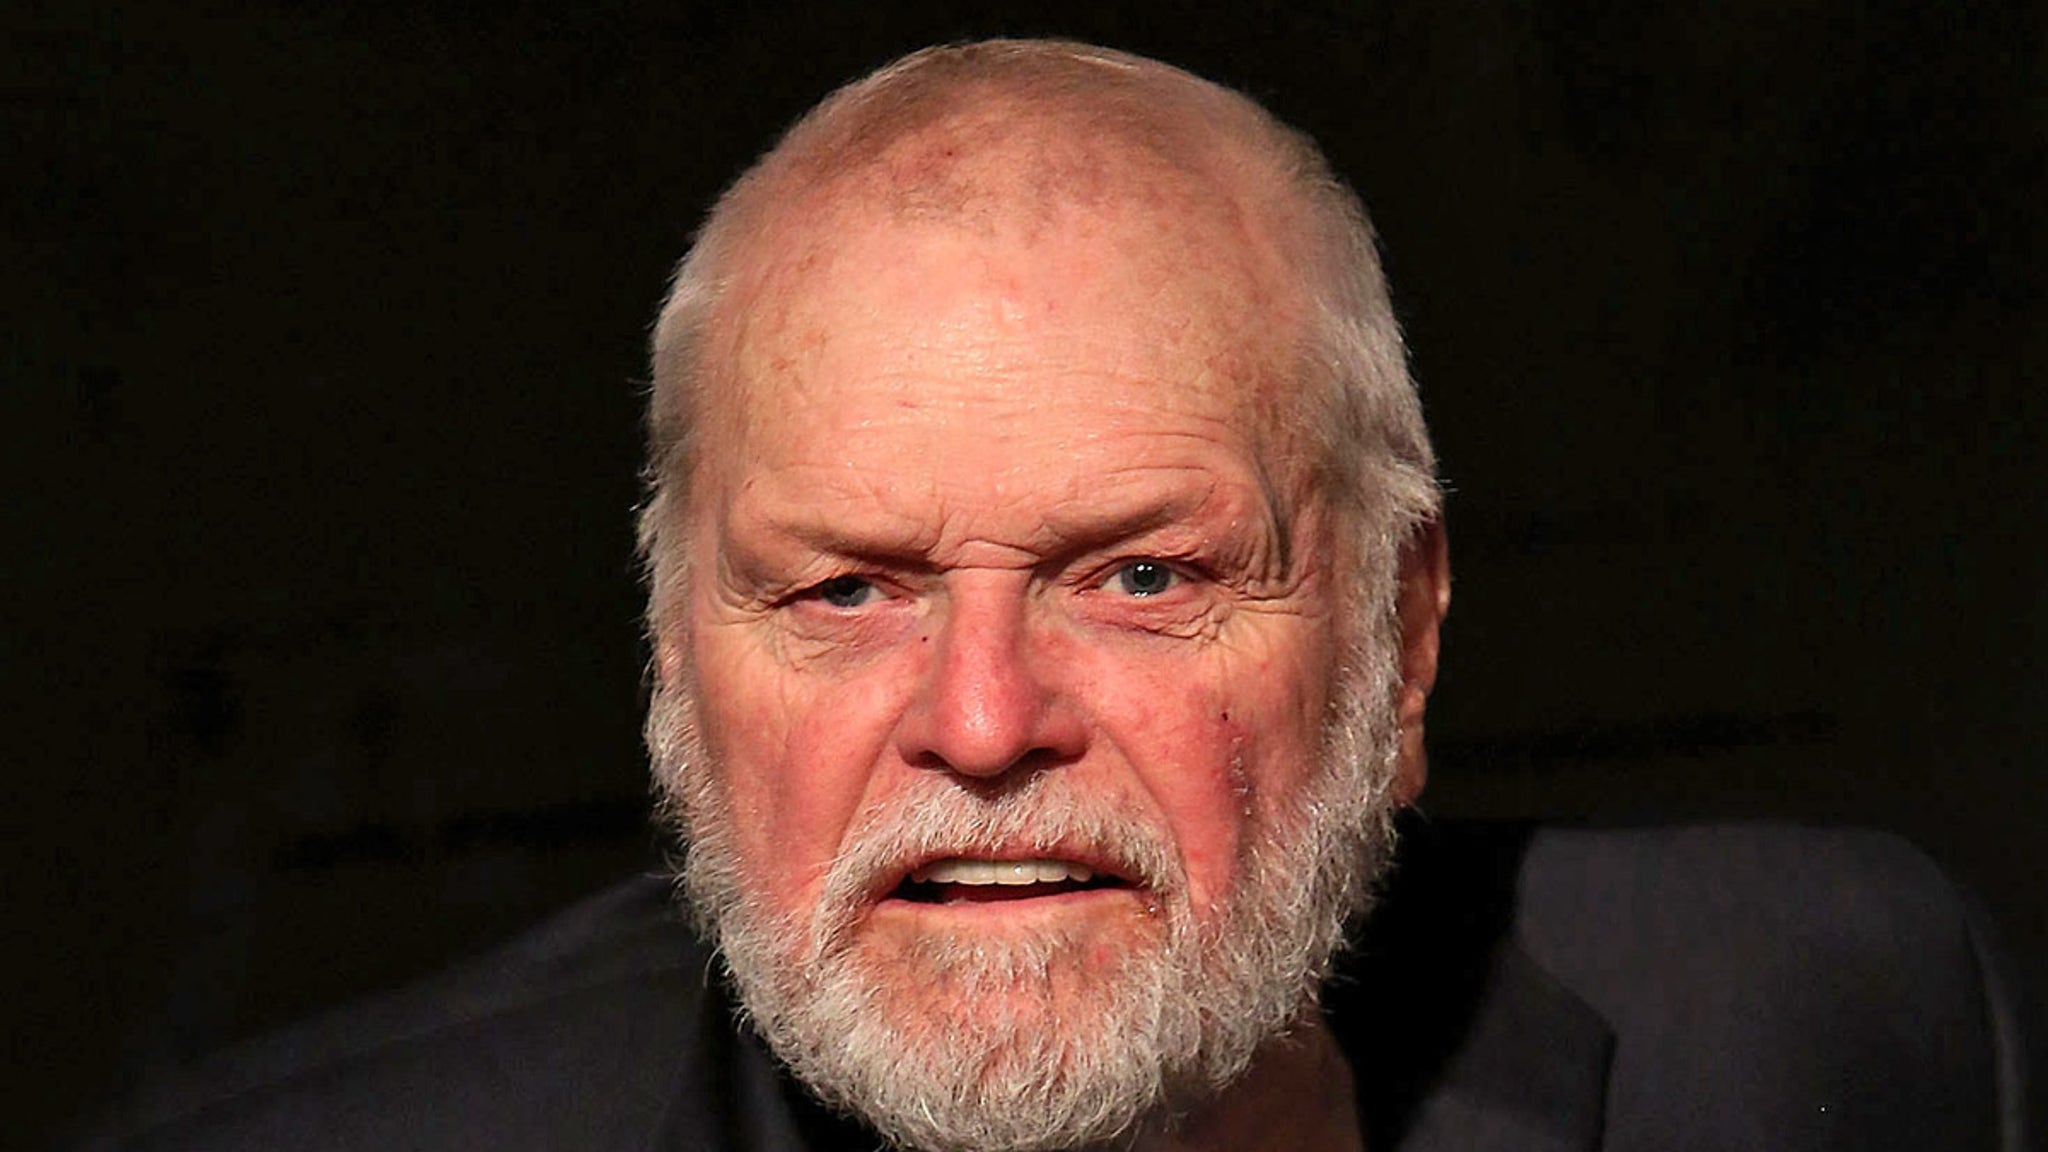 'Tommy Boy' 'Dynasty' Actor Brian Dennehy Dead at 81 - TMZ